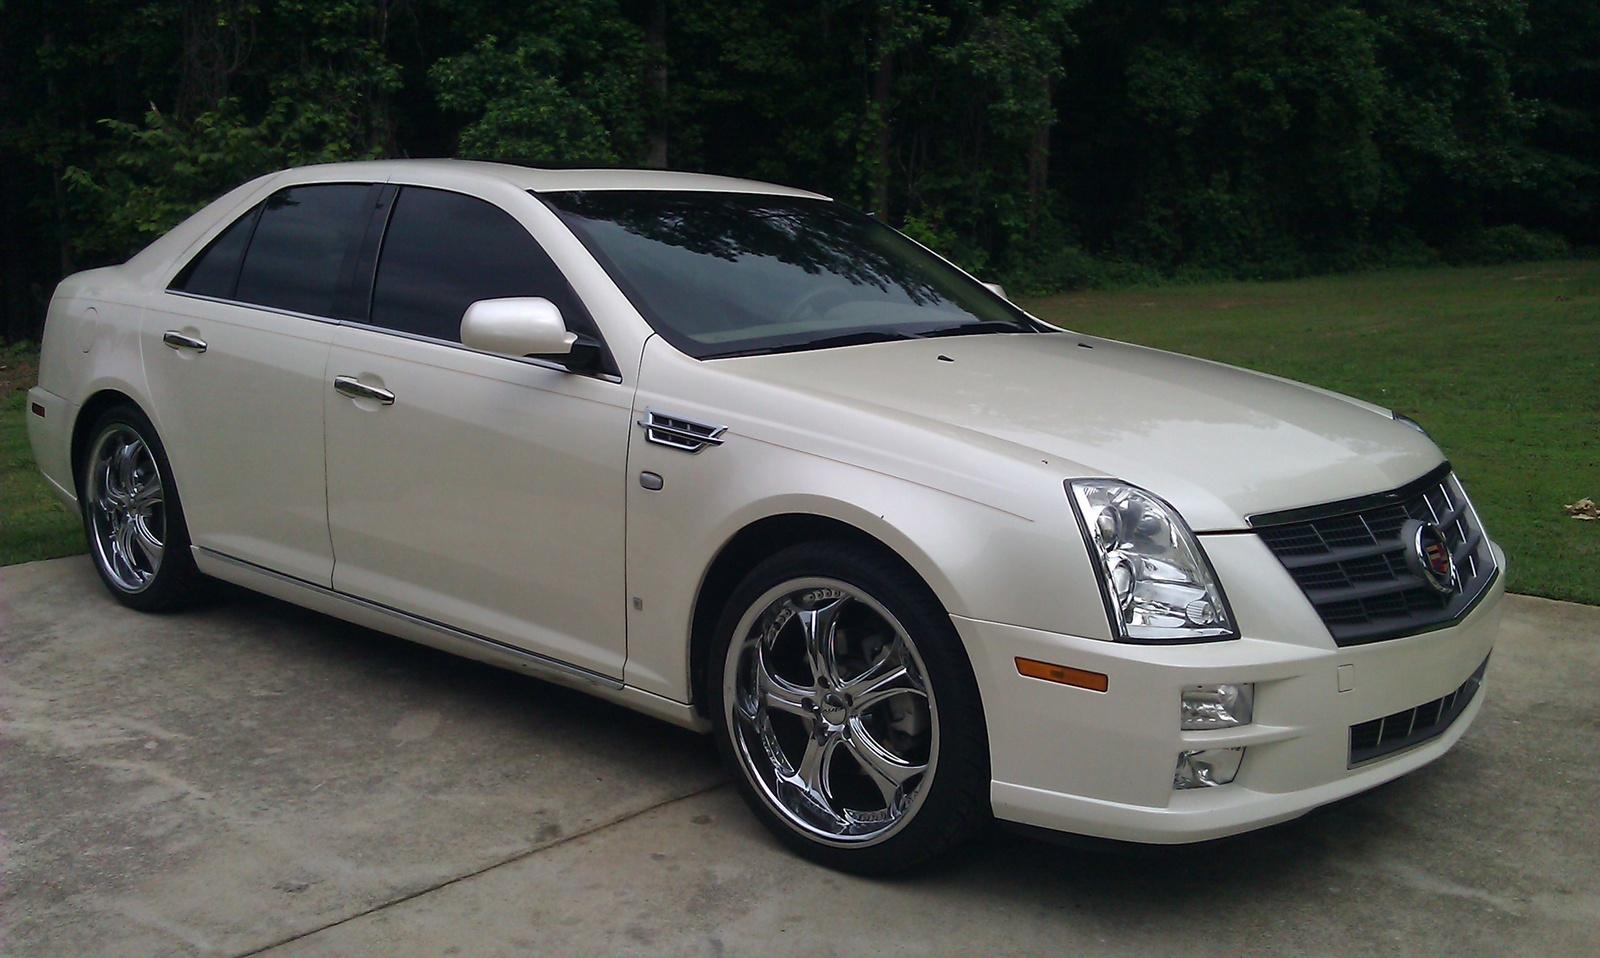 2008 cadillac sts v8 2008 cadillac sts pictures cargurus. Black Bedroom Furniture Sets. Home Design Ideas